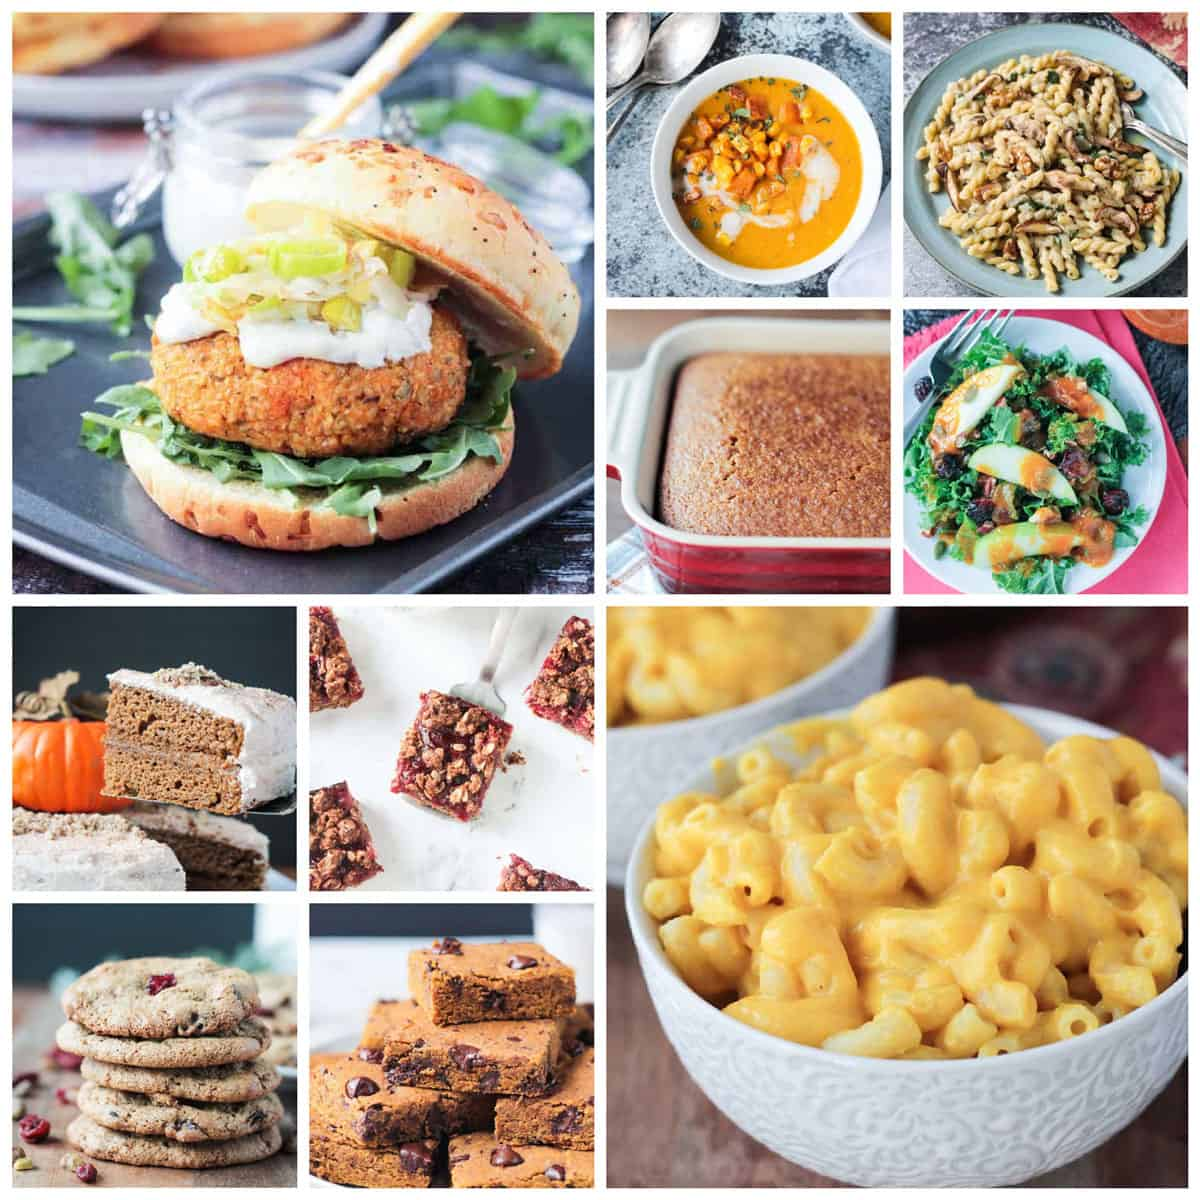 10 photo collage of vegan thanksgiving recipes.